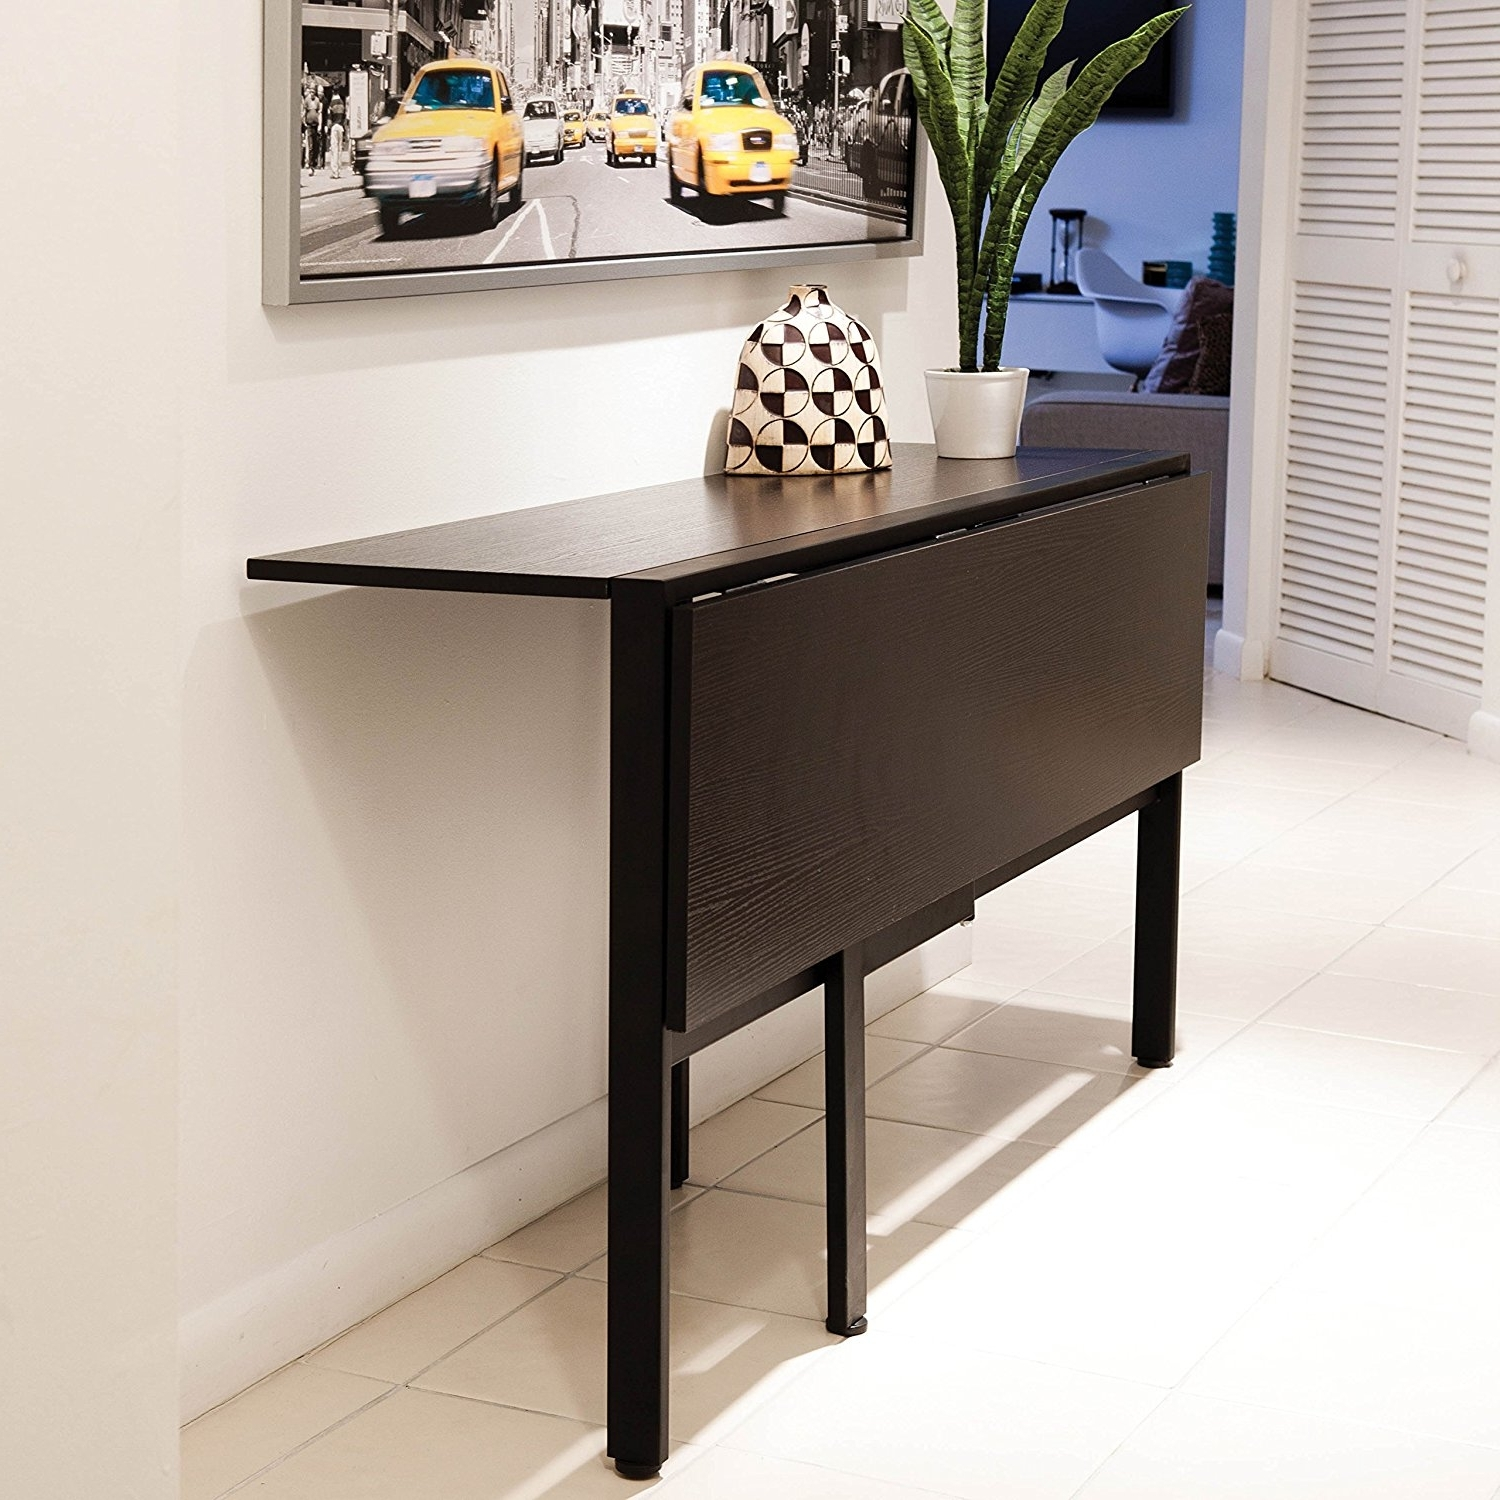 What Are The Benefits Of Folding Dining Tables? – Home Decor Ideas Intended For Most Popular Cheap Folding Dining Tables (View 24 of 25)